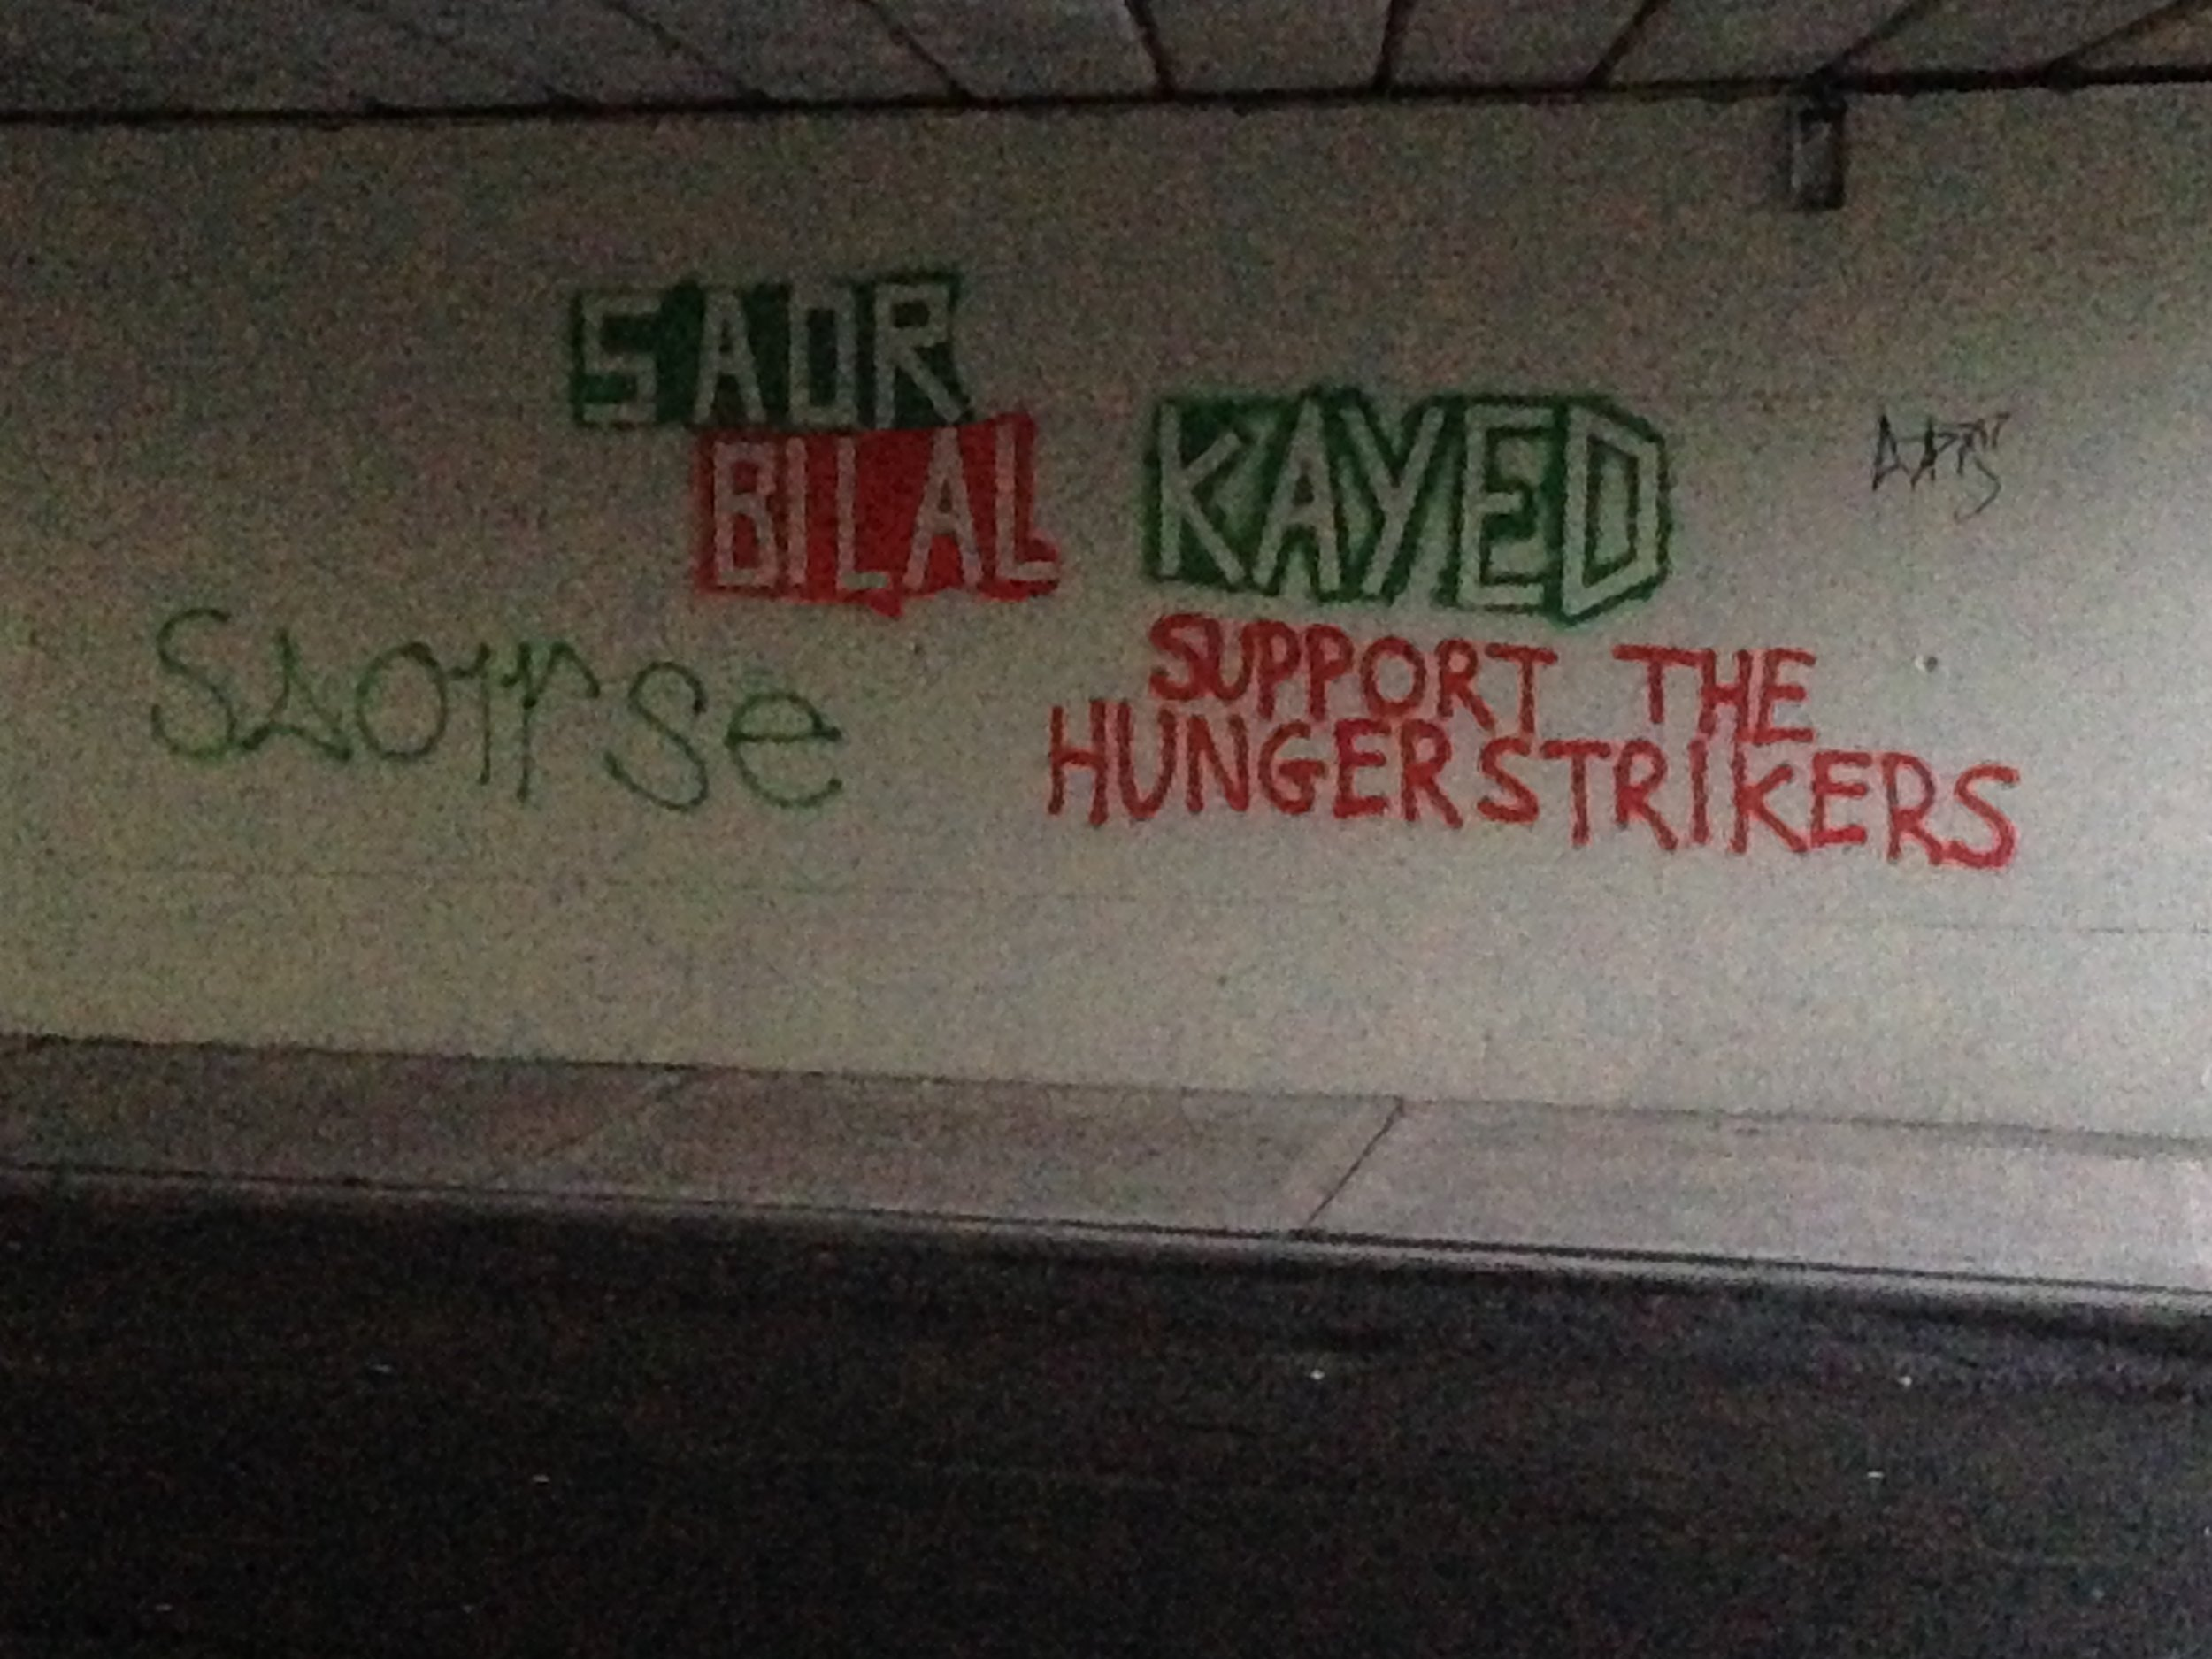 """Green and orange spray painted messages seen underneath the Dyke Road bridge at the beginning of 2017. """" Saoirse""""  meaning """"Freedom"""" and """" Saor Bilal Kayed , SUPPORT THE HUNGERSTRIKERS"""", """" saor""""  meaning """"free""""."""